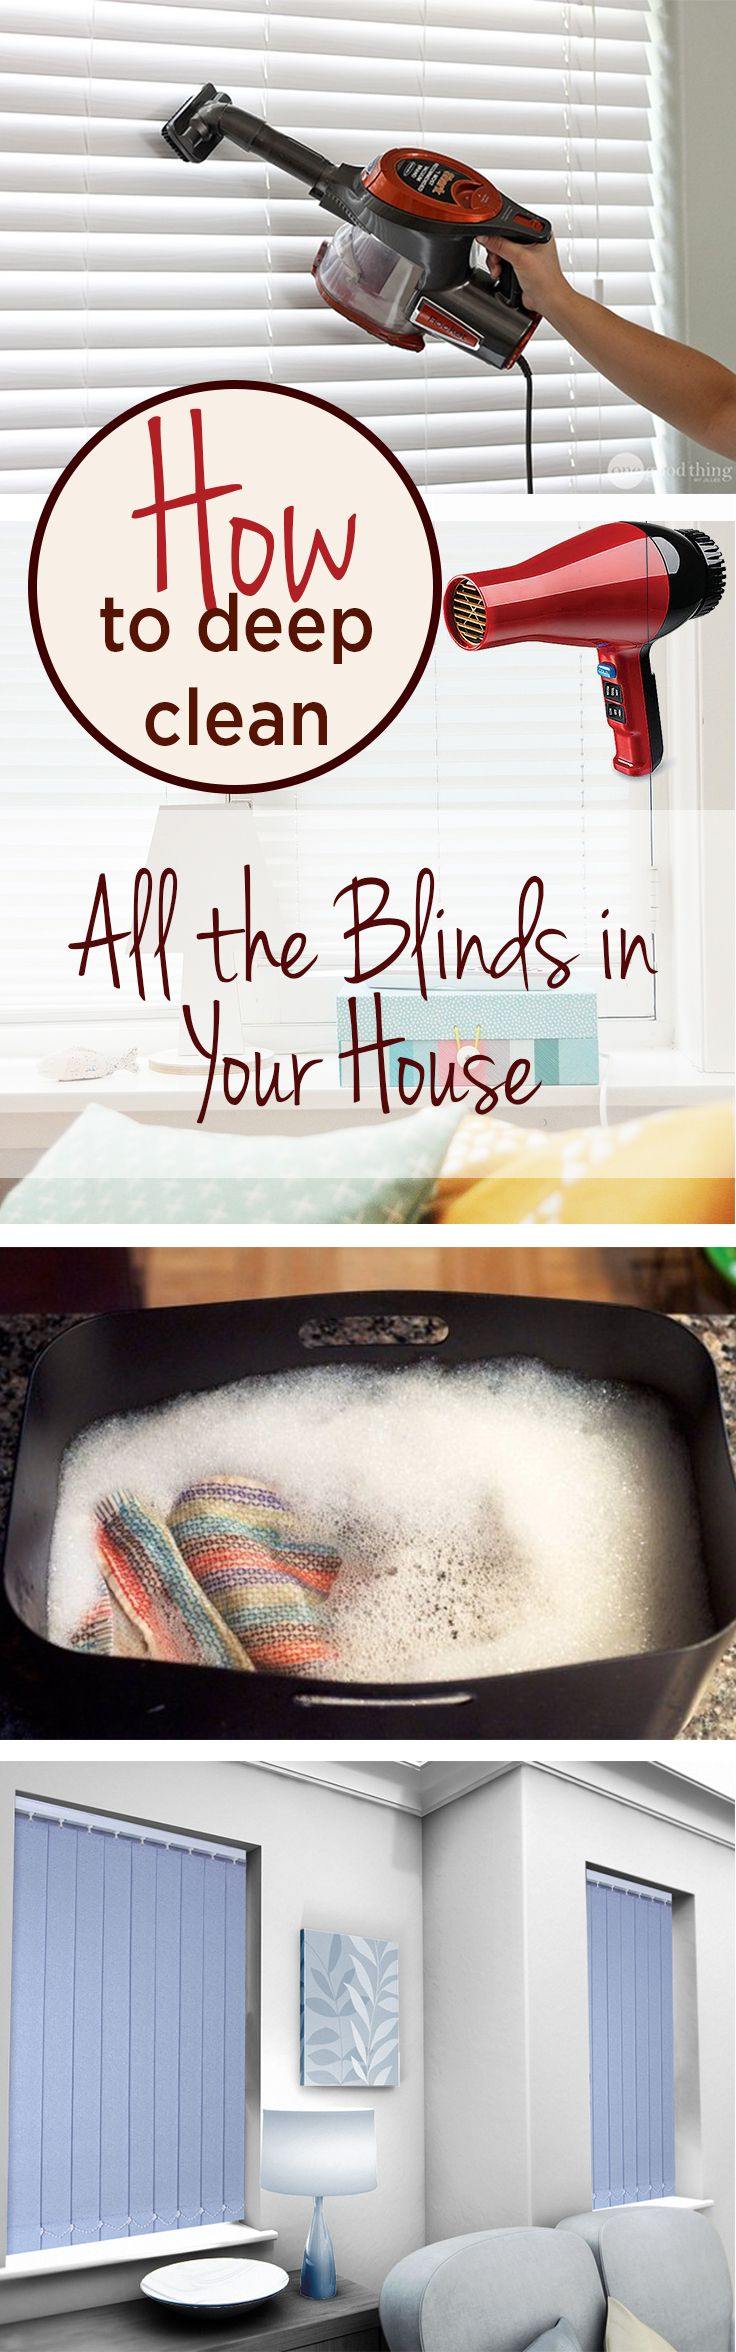 Deep clean, how to clean your blinds, clean your blinds, popular pin, bling…